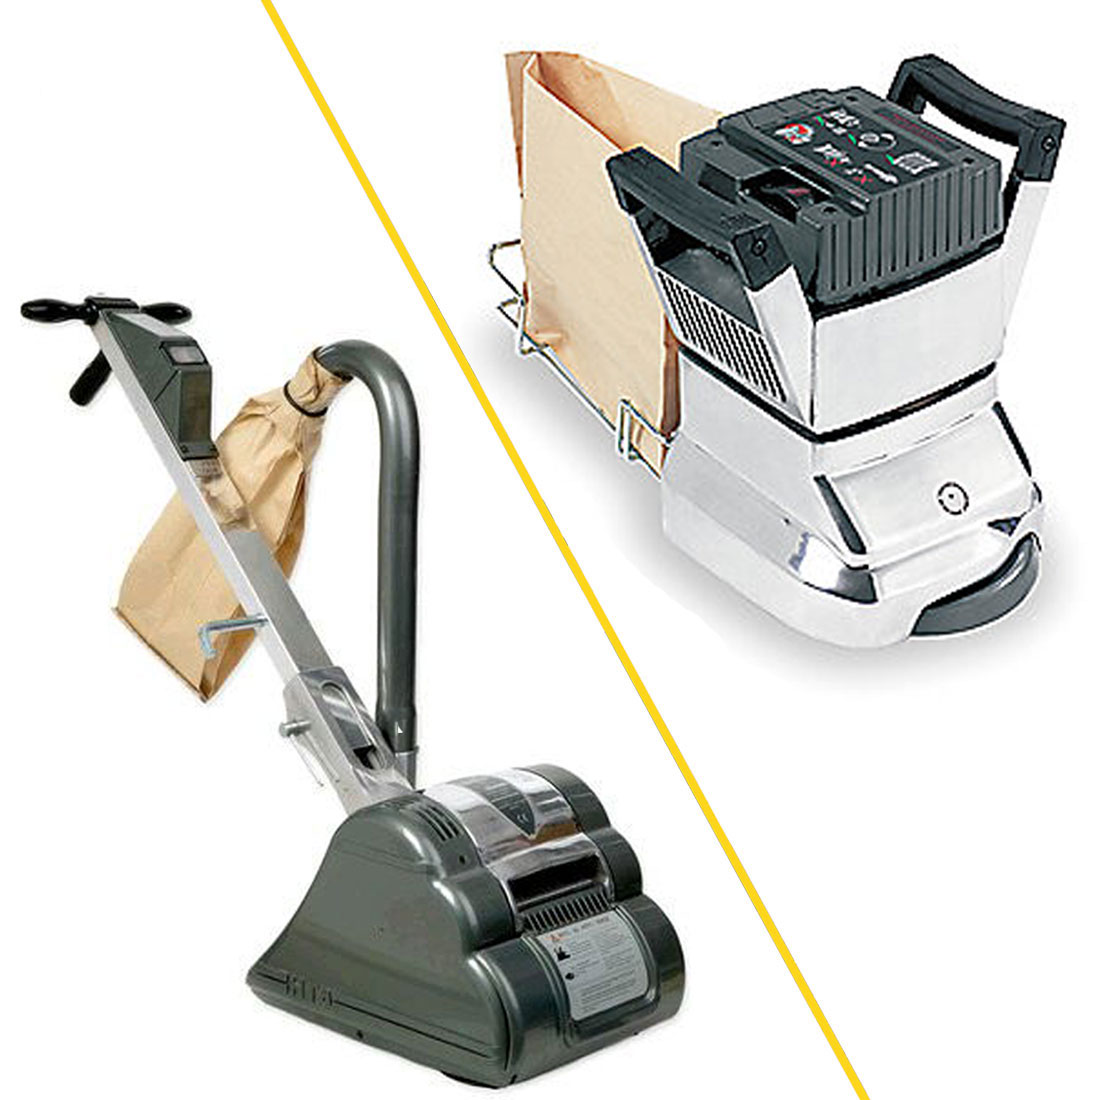 Floor and Edge Sander Hire Pack